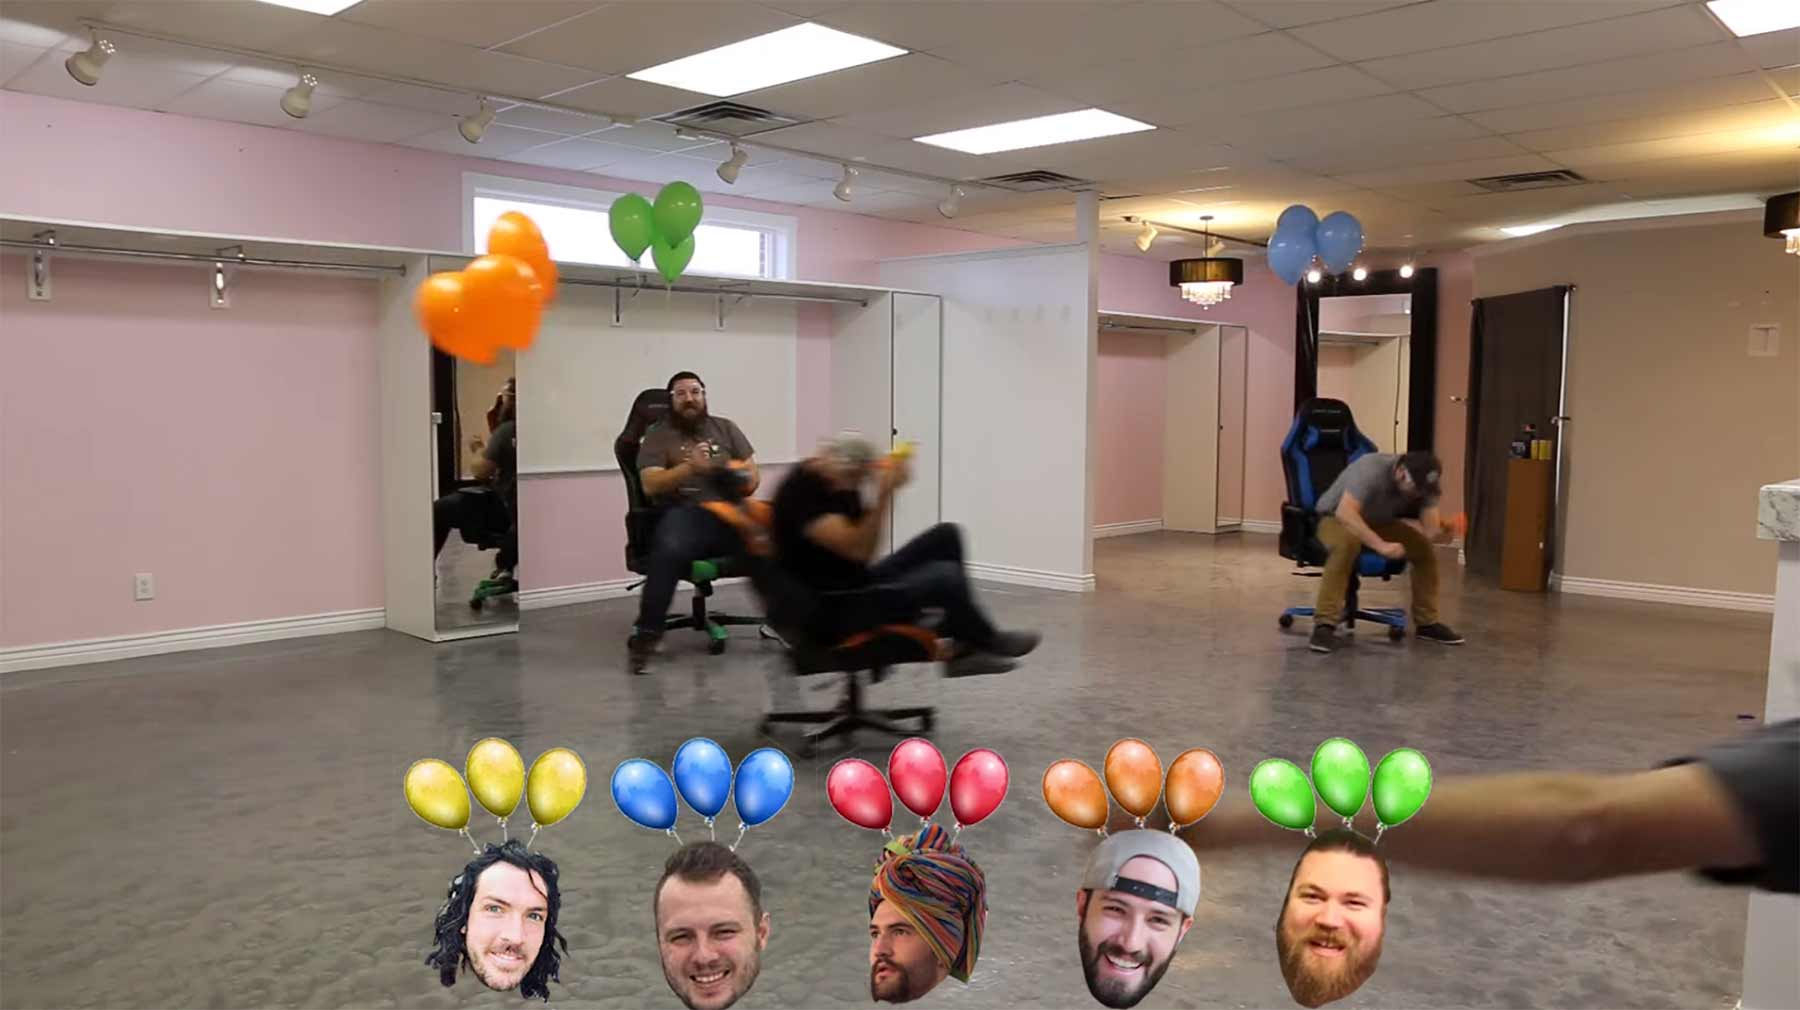 Mario Kart-Luftballon-Battle-Modus mit Bürostühlen und Nerf-Guns mario-kart-ballon-battle-office